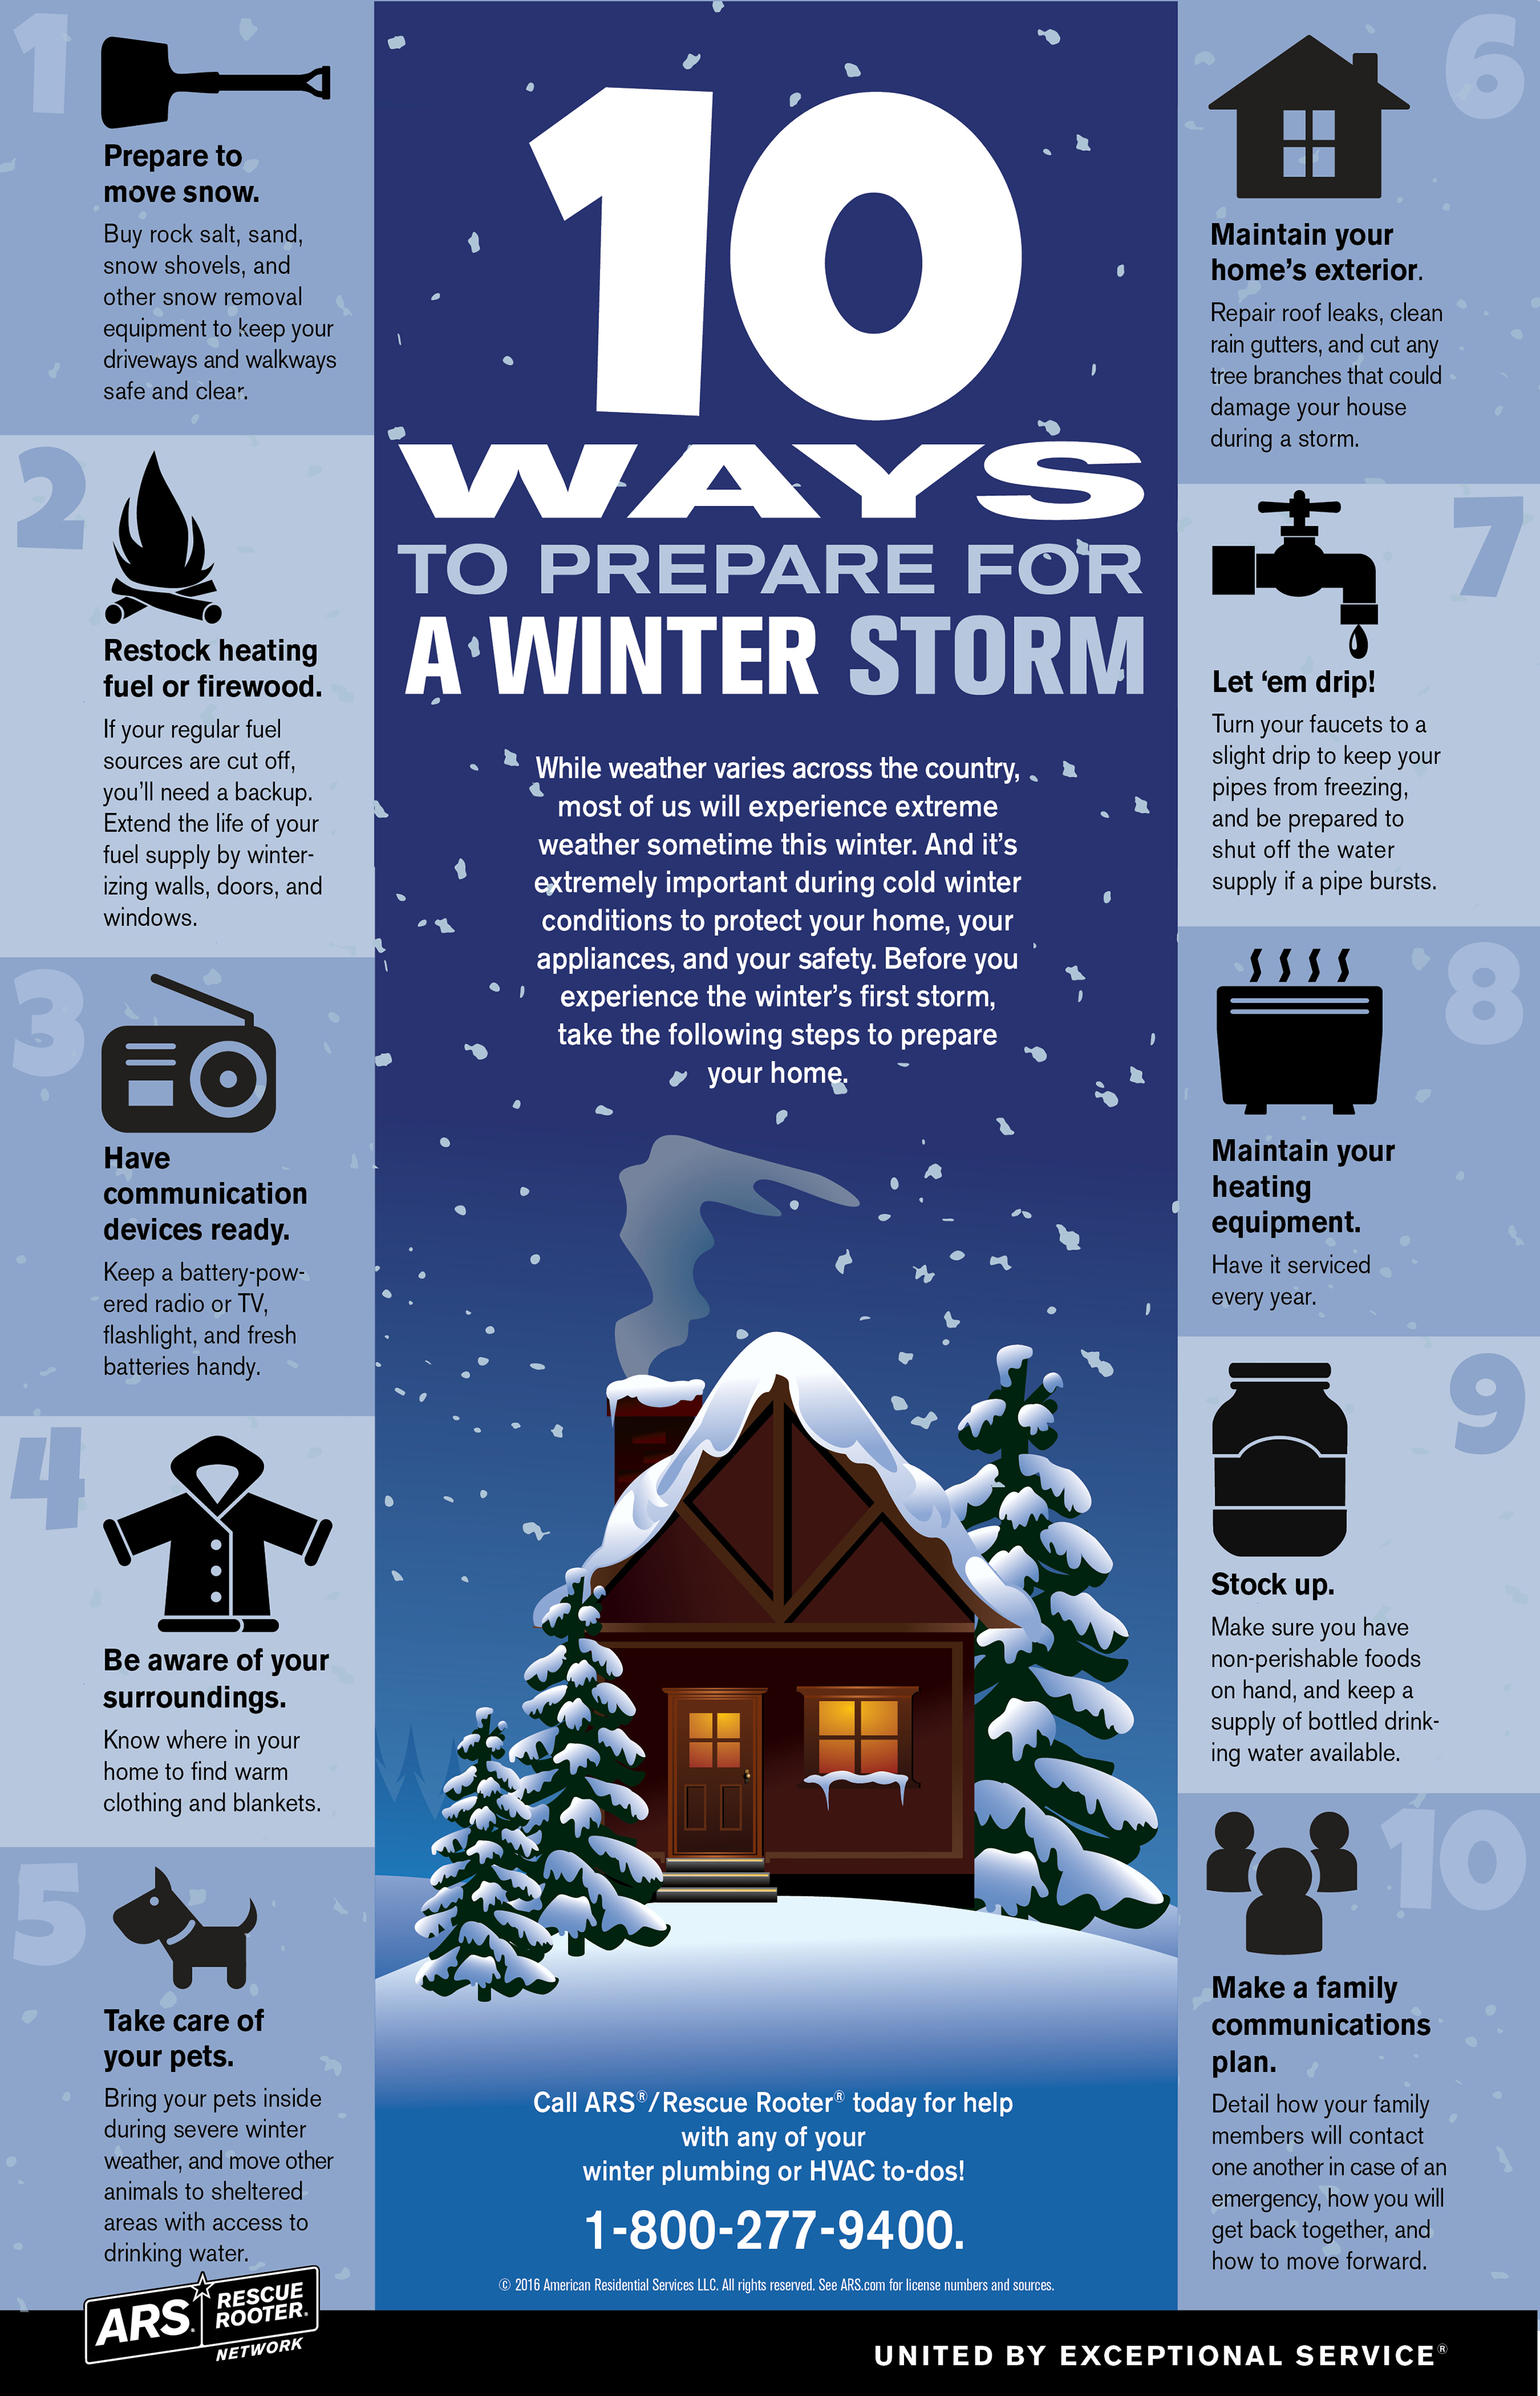 WINTER-STORM-INFOGRAPHIC-12-13-16F.jpg